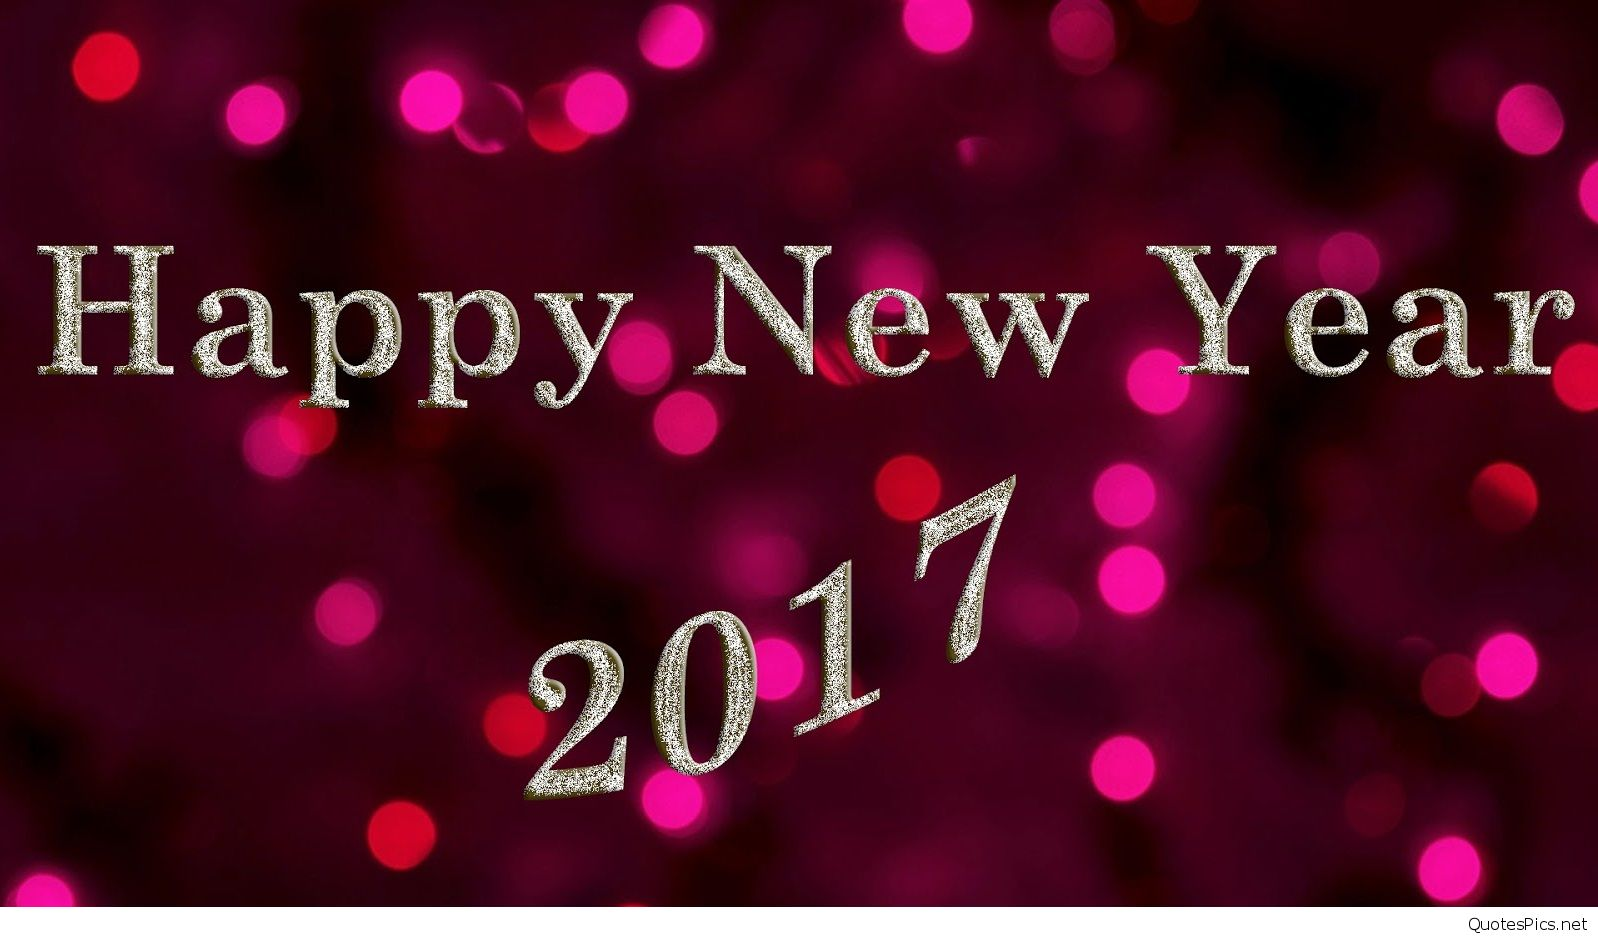 Happy new year wallpaper wallpapers 2017 HD 1598x937